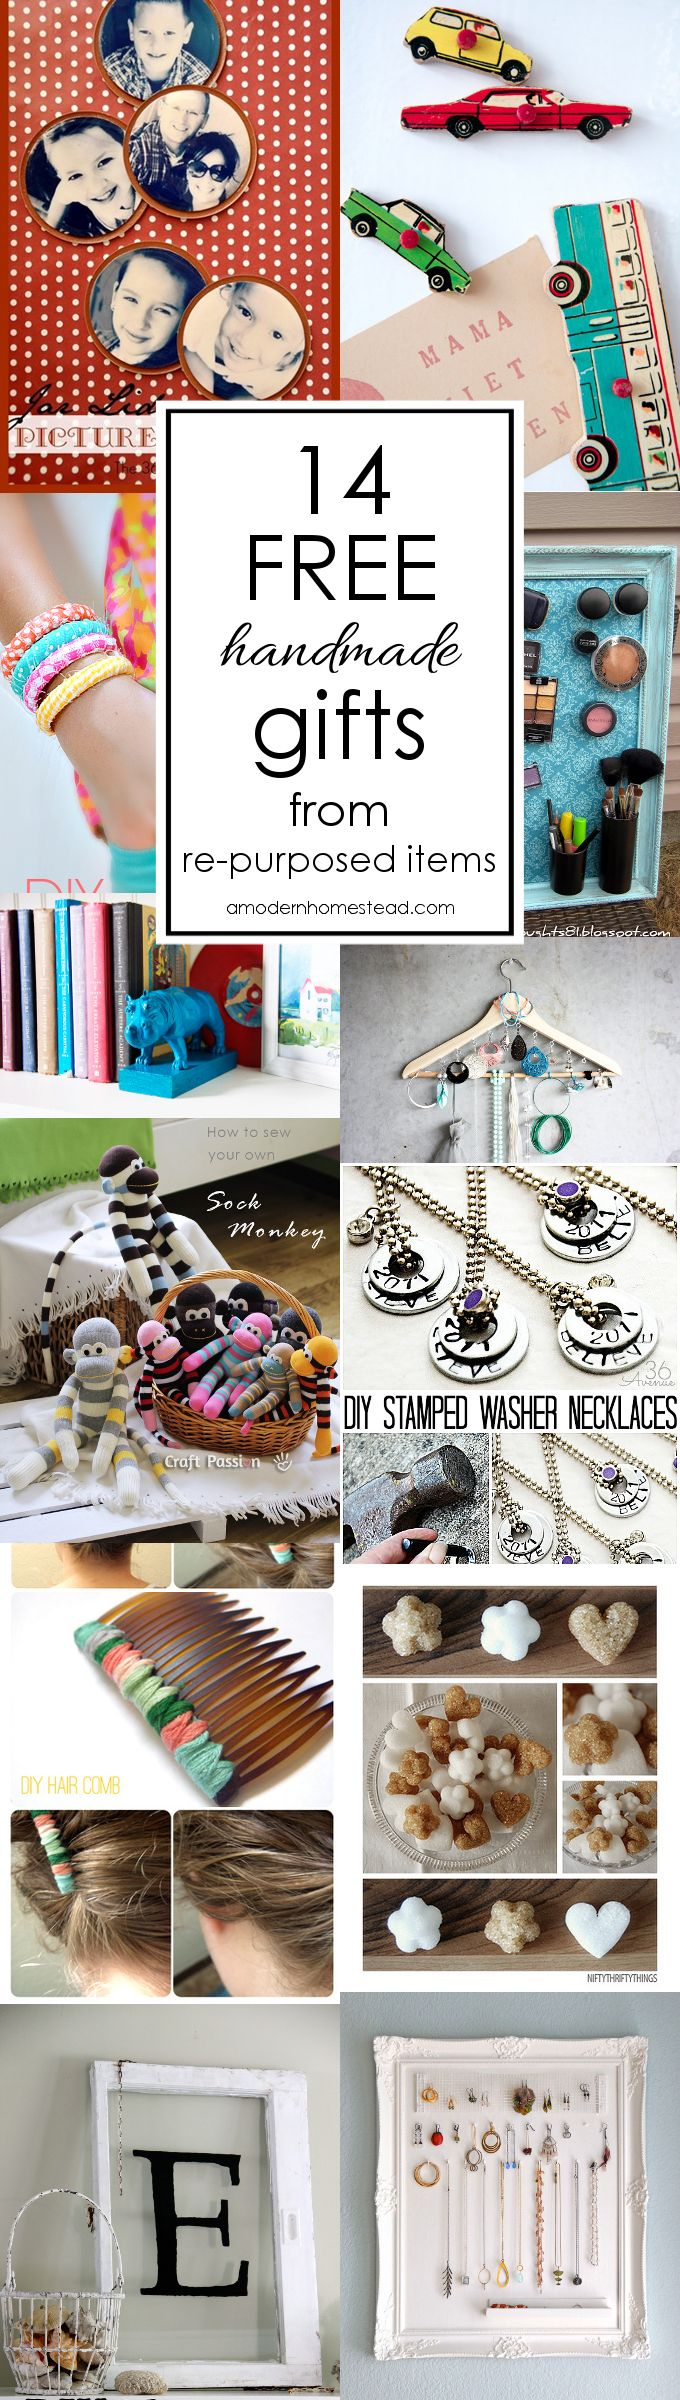 FREE handmade gifts make it possible to give thoughtful presents even when you're low on cash! These are all items you can make from re-purposed items and that anyone would be thrilled to receive!